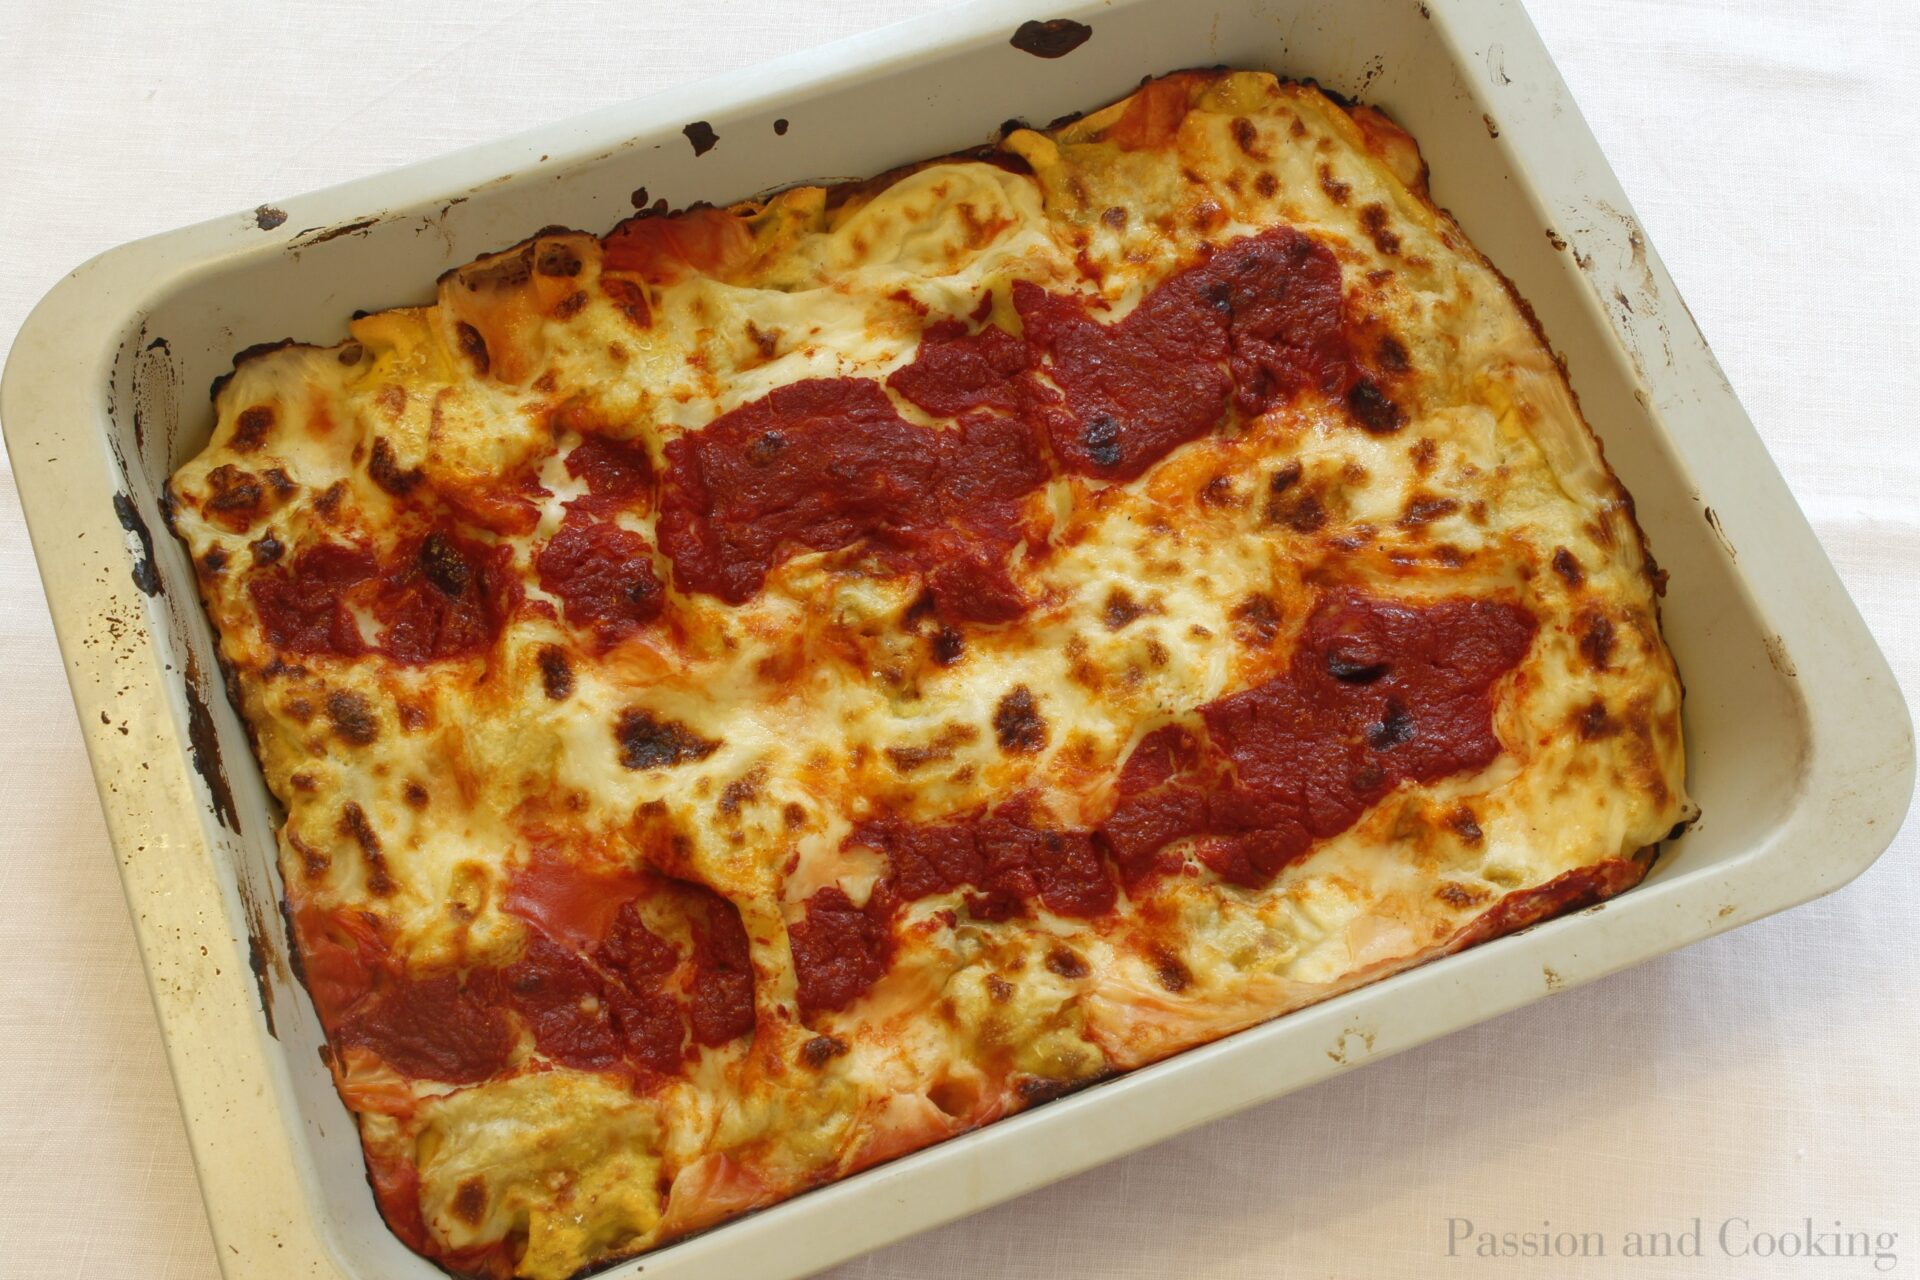 Cannelloni stuffed with meat- pan